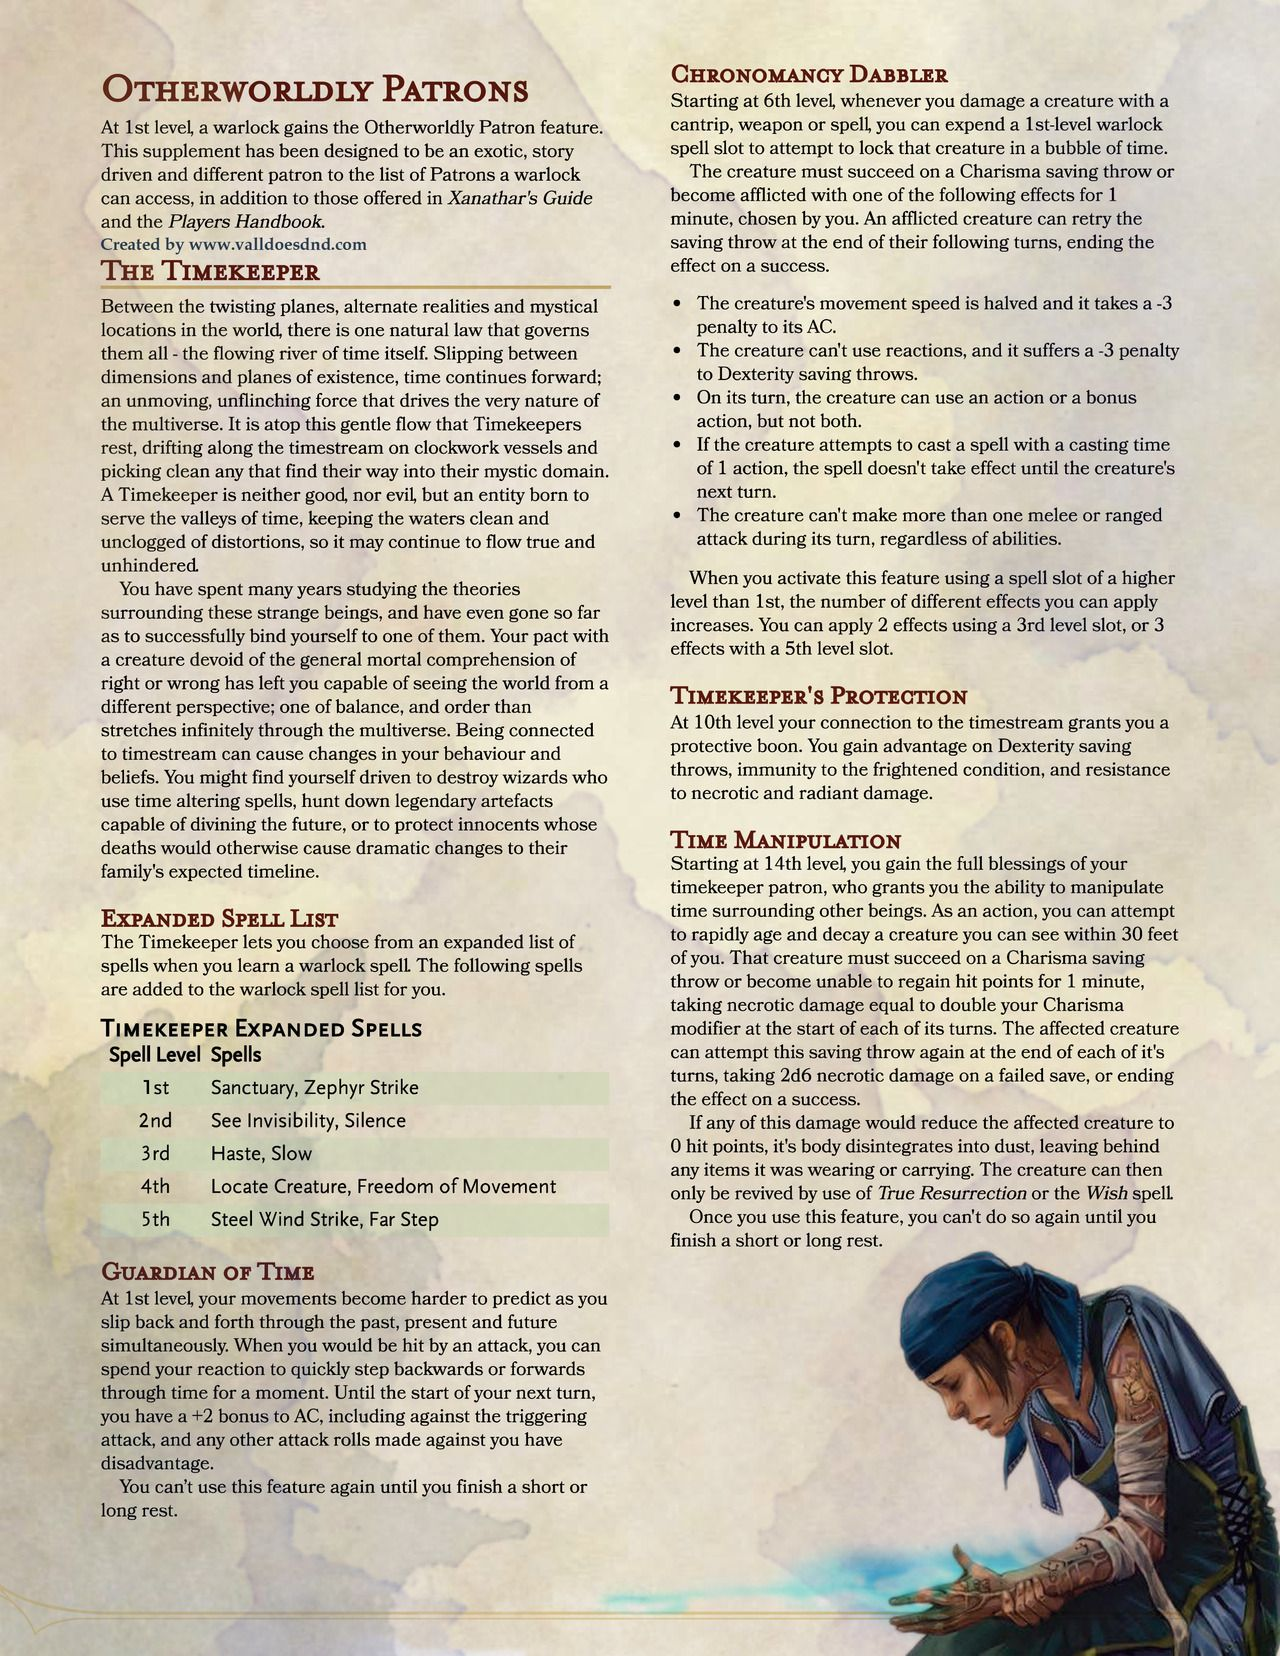 The Huntsman's Homebrews — valldoesdnd: For those who don't